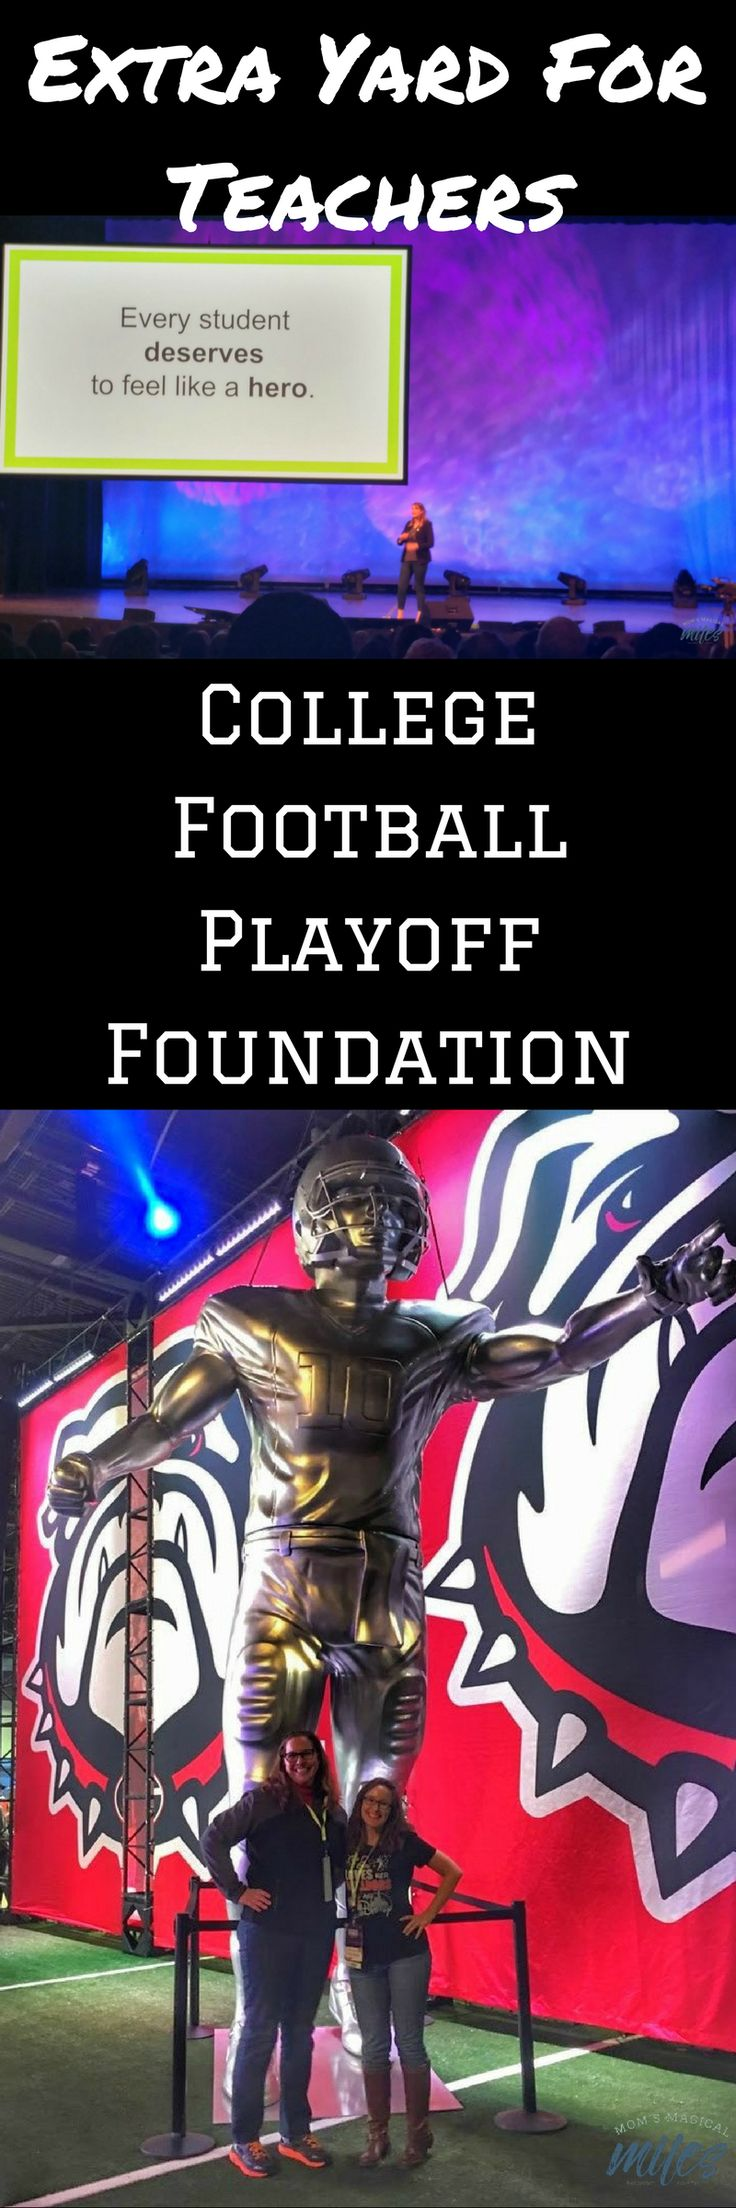 Extra Yard for Teachers is a charitable arm of the College Football Playoff Foundation. It's mission is to encourage and inspire educators across the country.